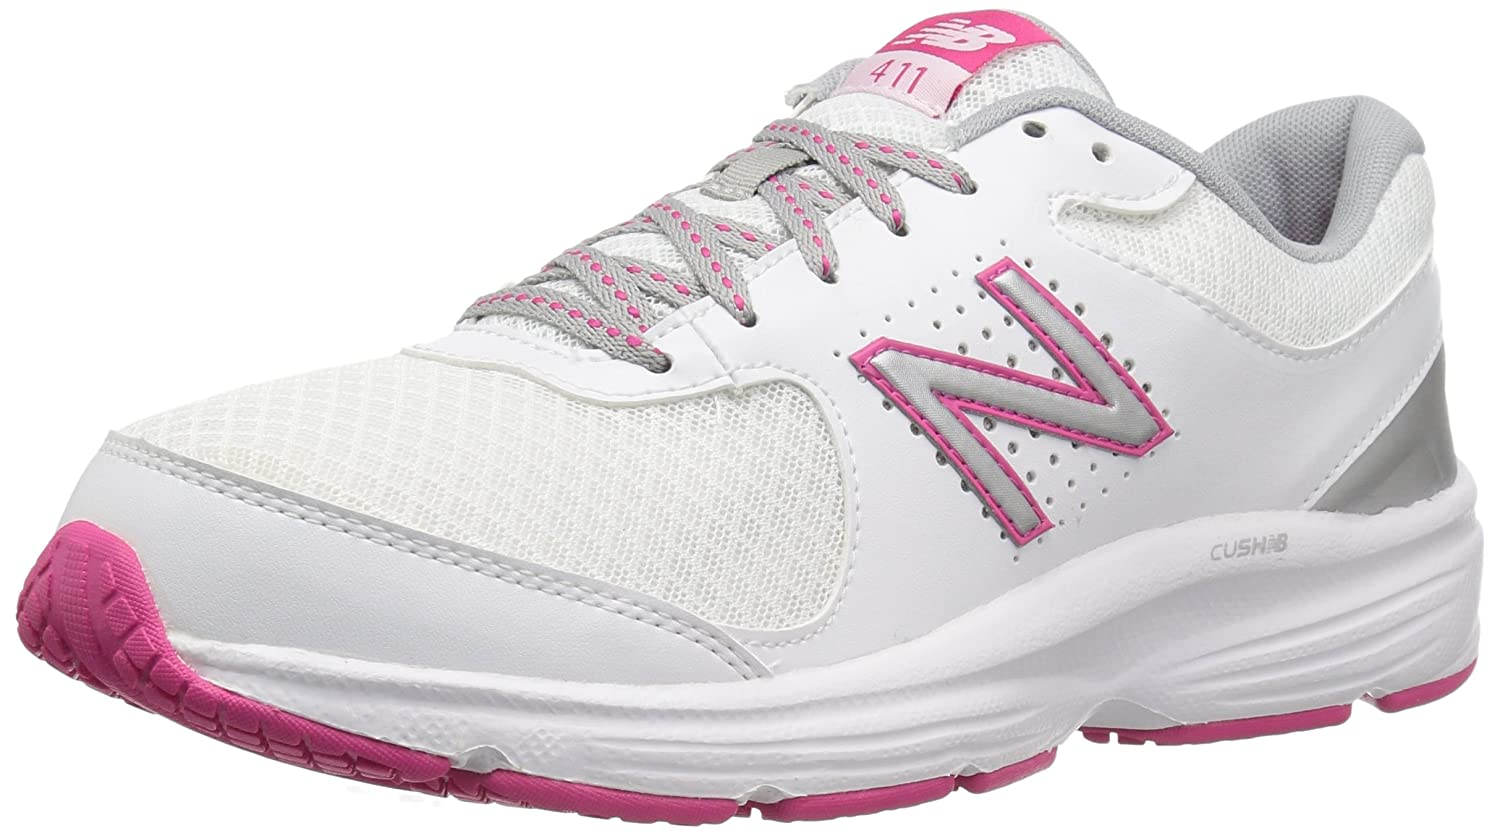 New Balance Women's WW411v2 Walking Shoe B00V3QT9KC 12 D US|White/Pink